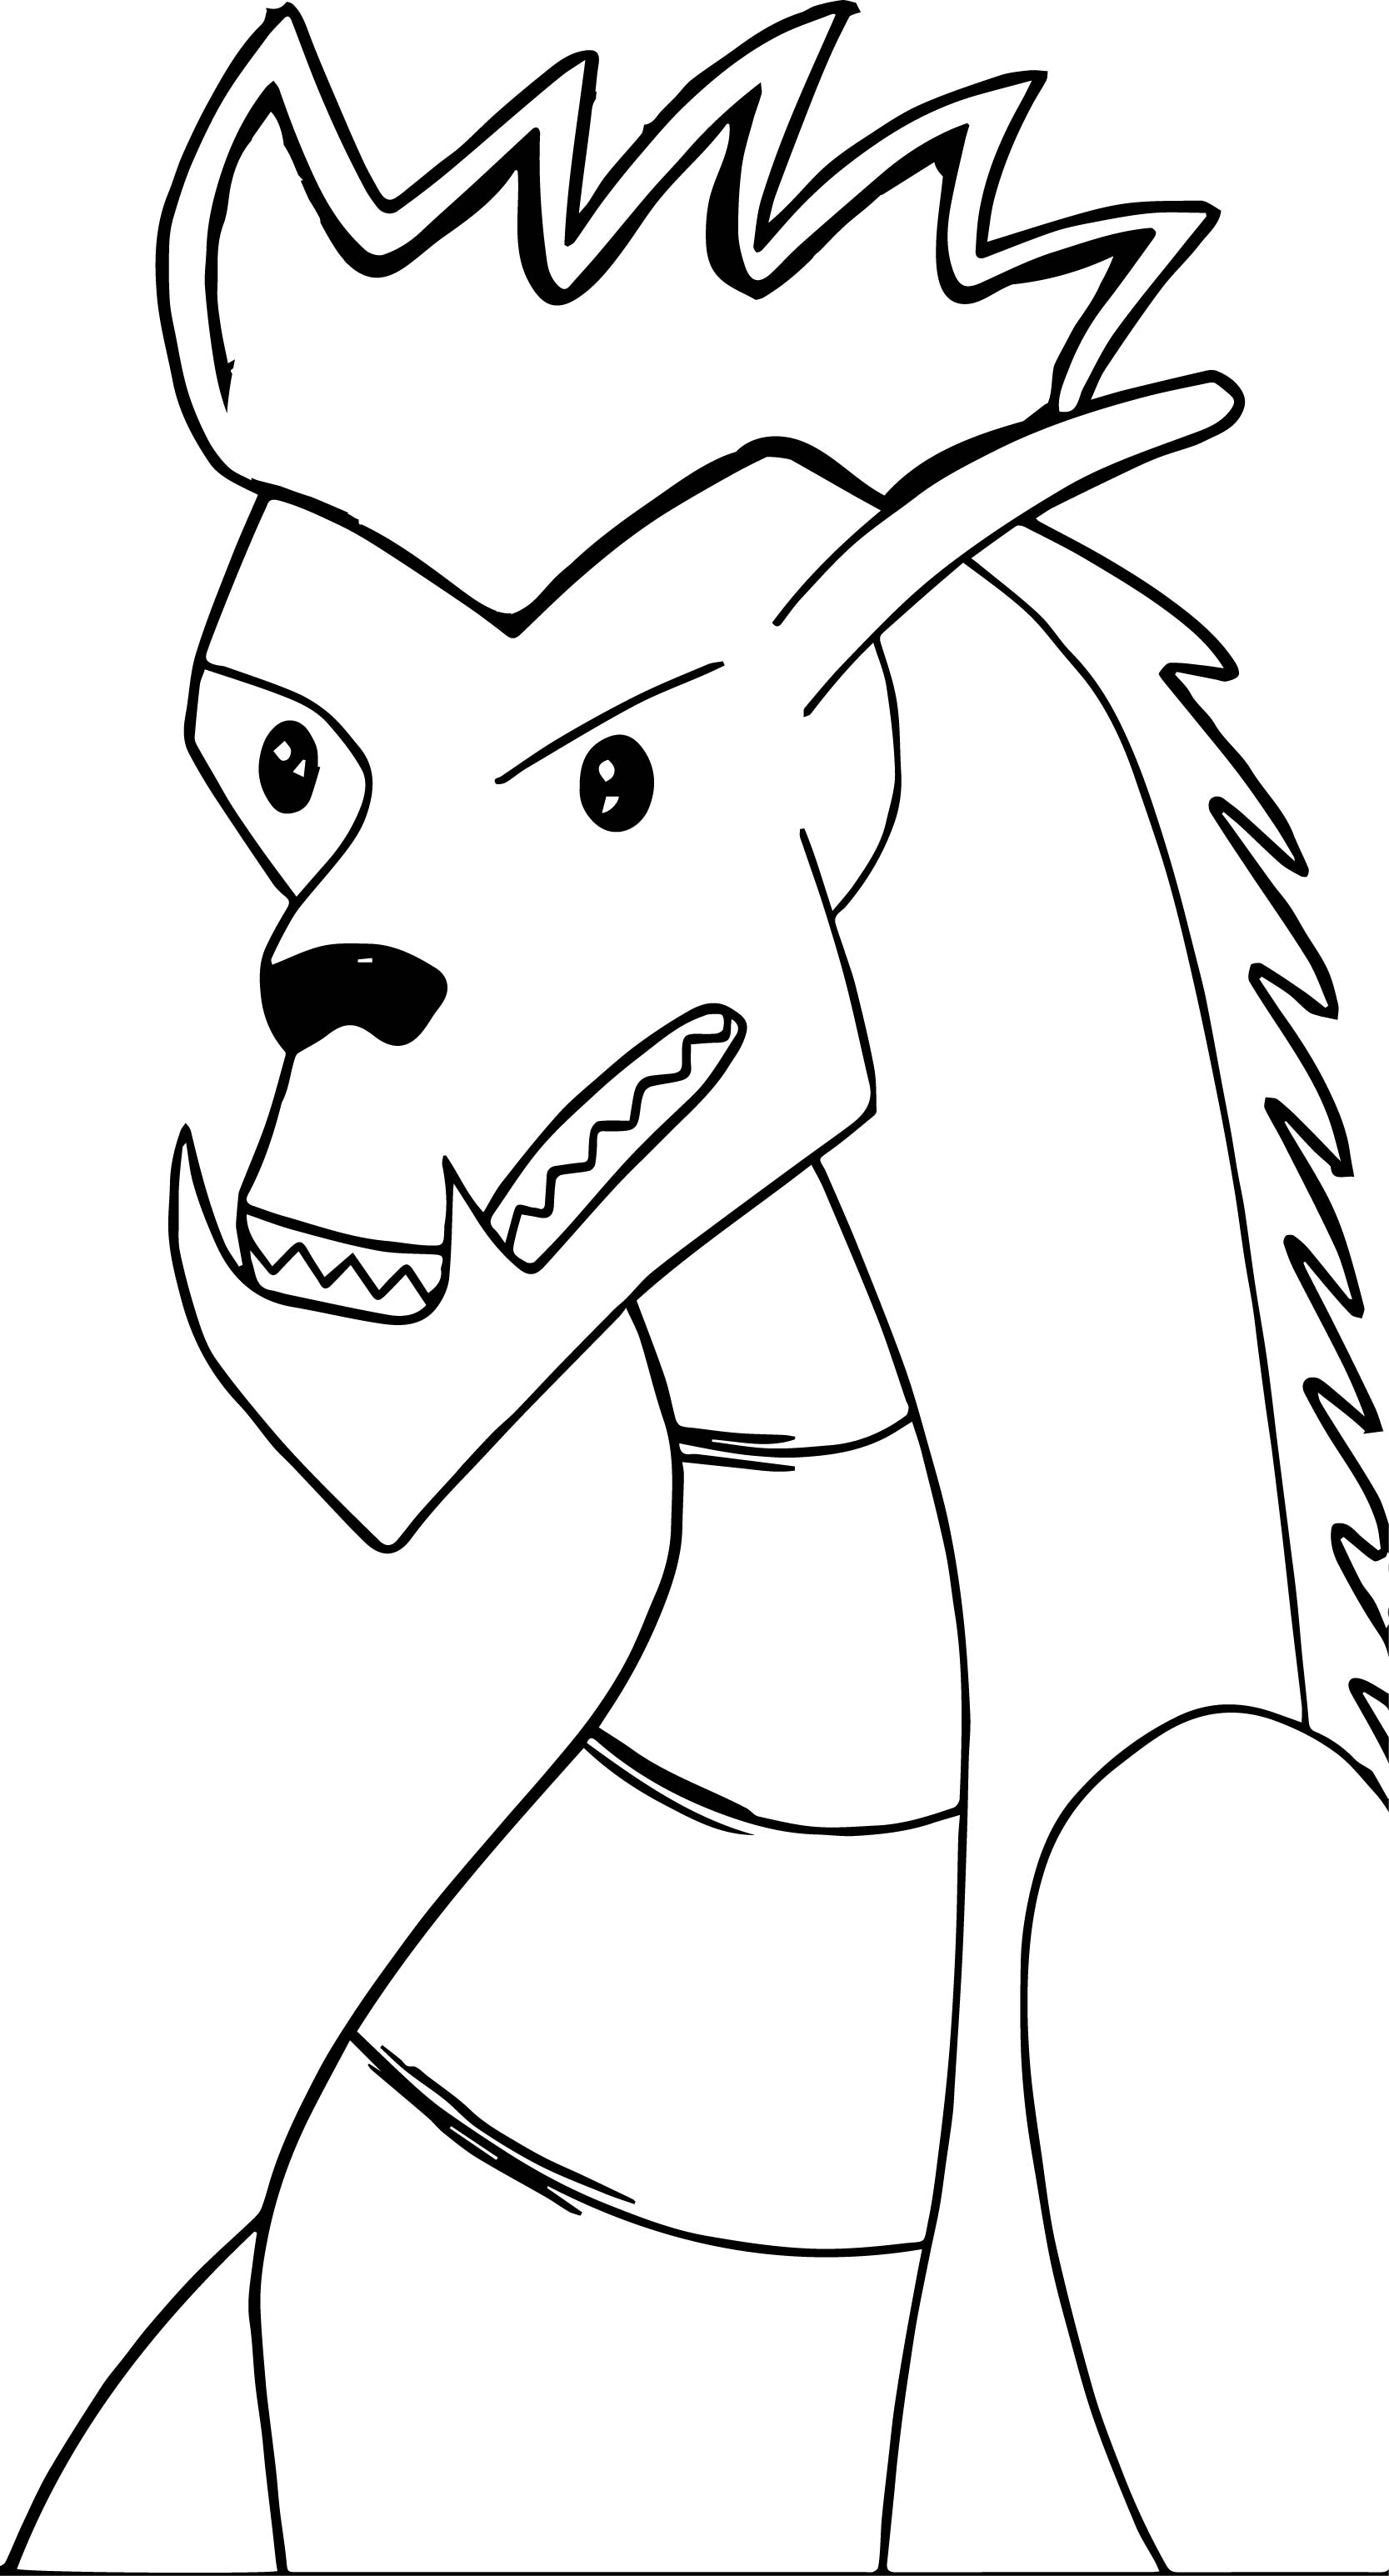 just american dragon coloring page wecoloringpage